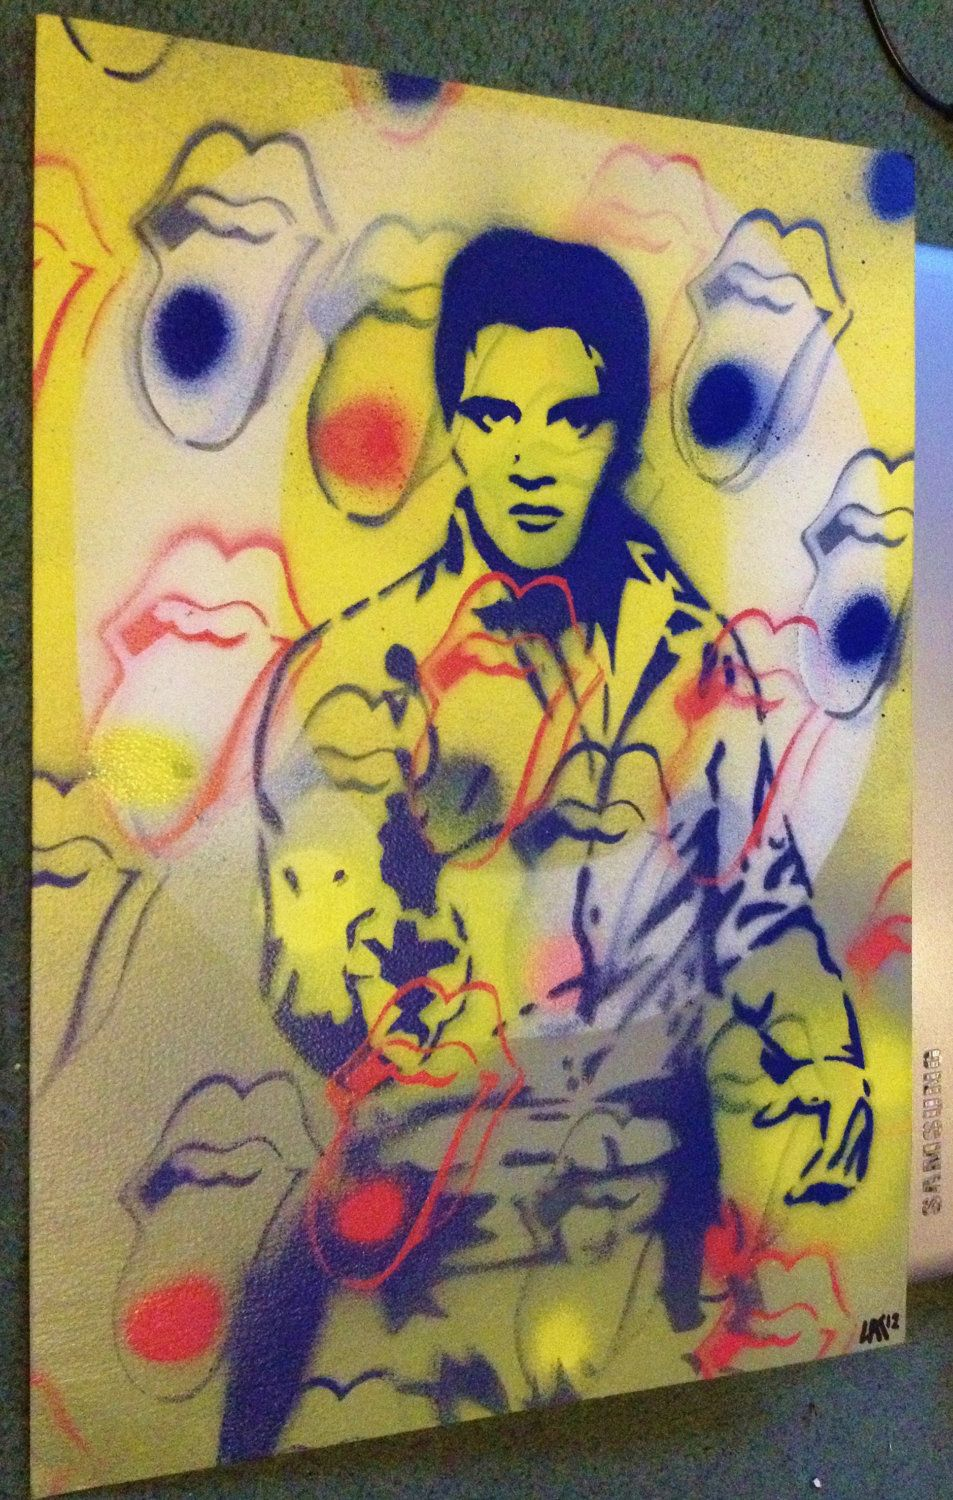 painting of elvis presleystones v by AbstractGraffitiShop on Etsy ...